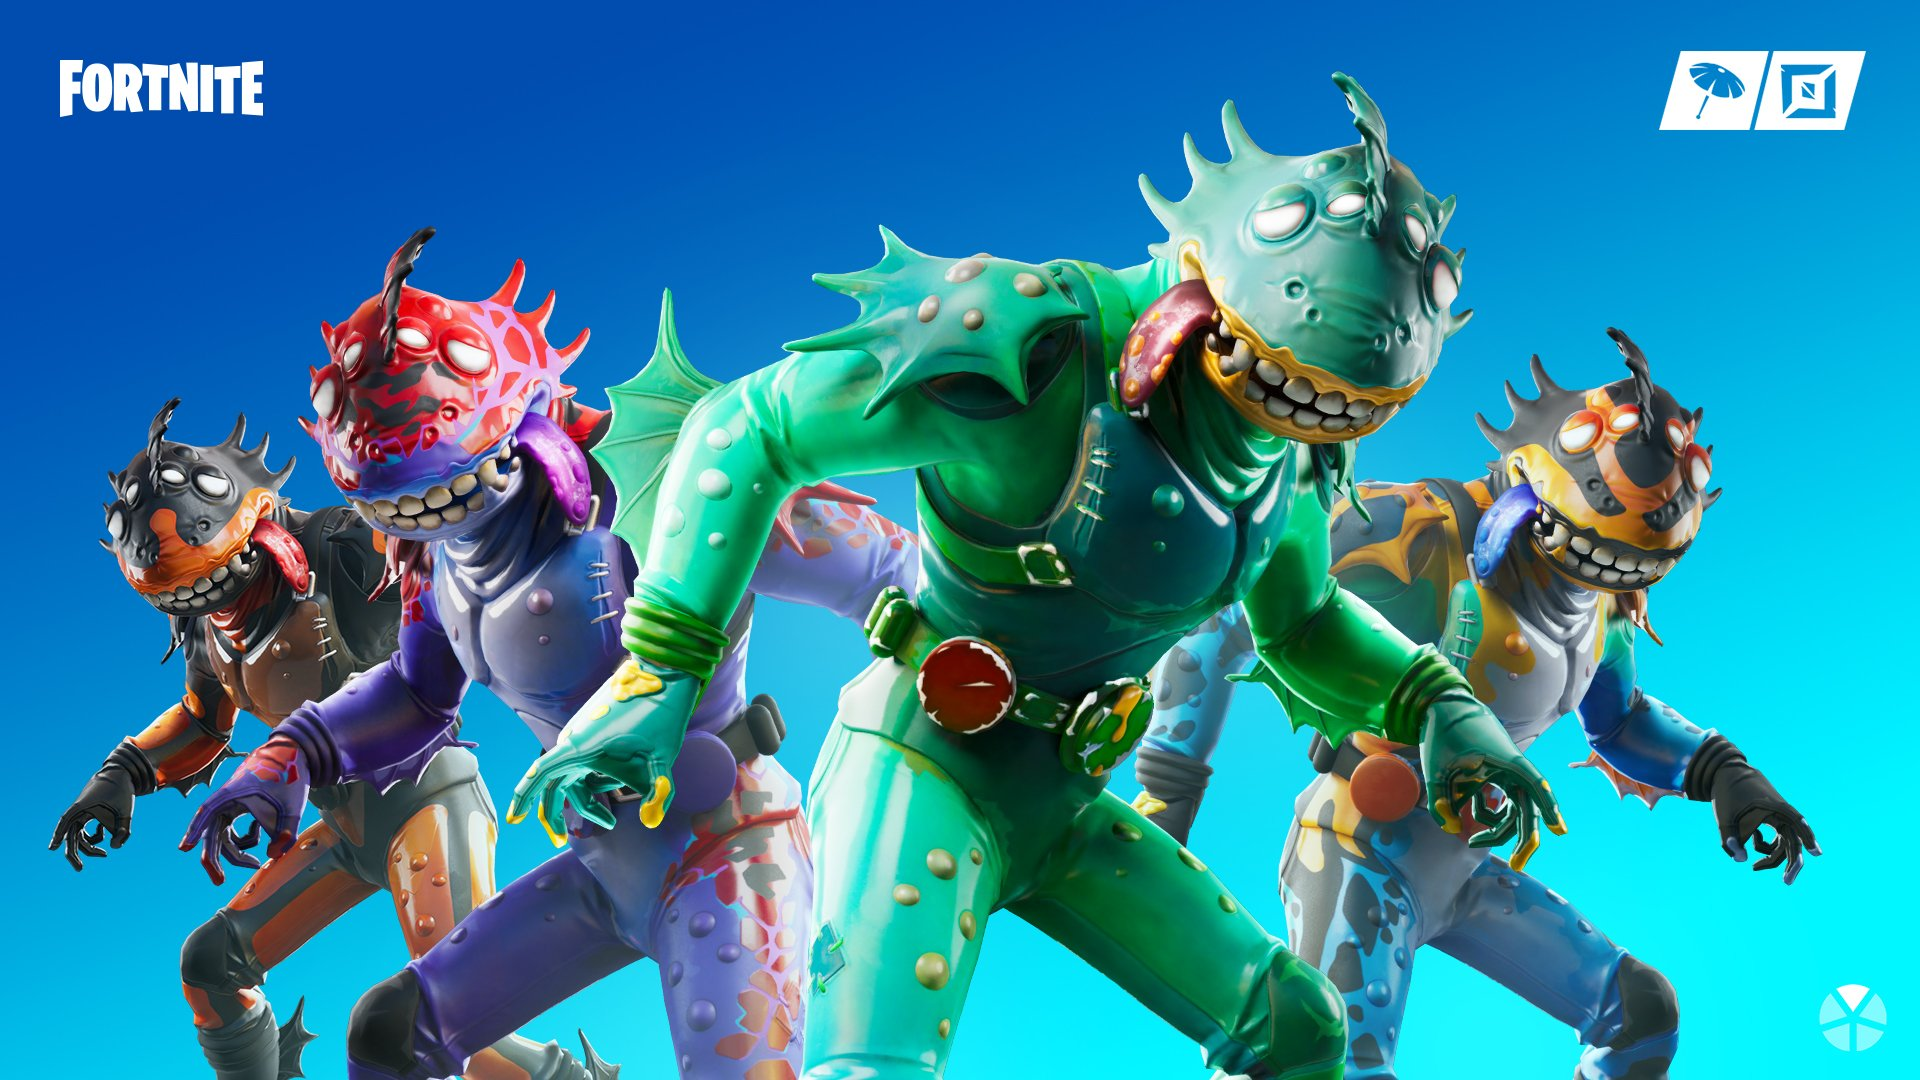 Fortnite   Moisty Merman Outfit Available   MobiTuner 1920x1080